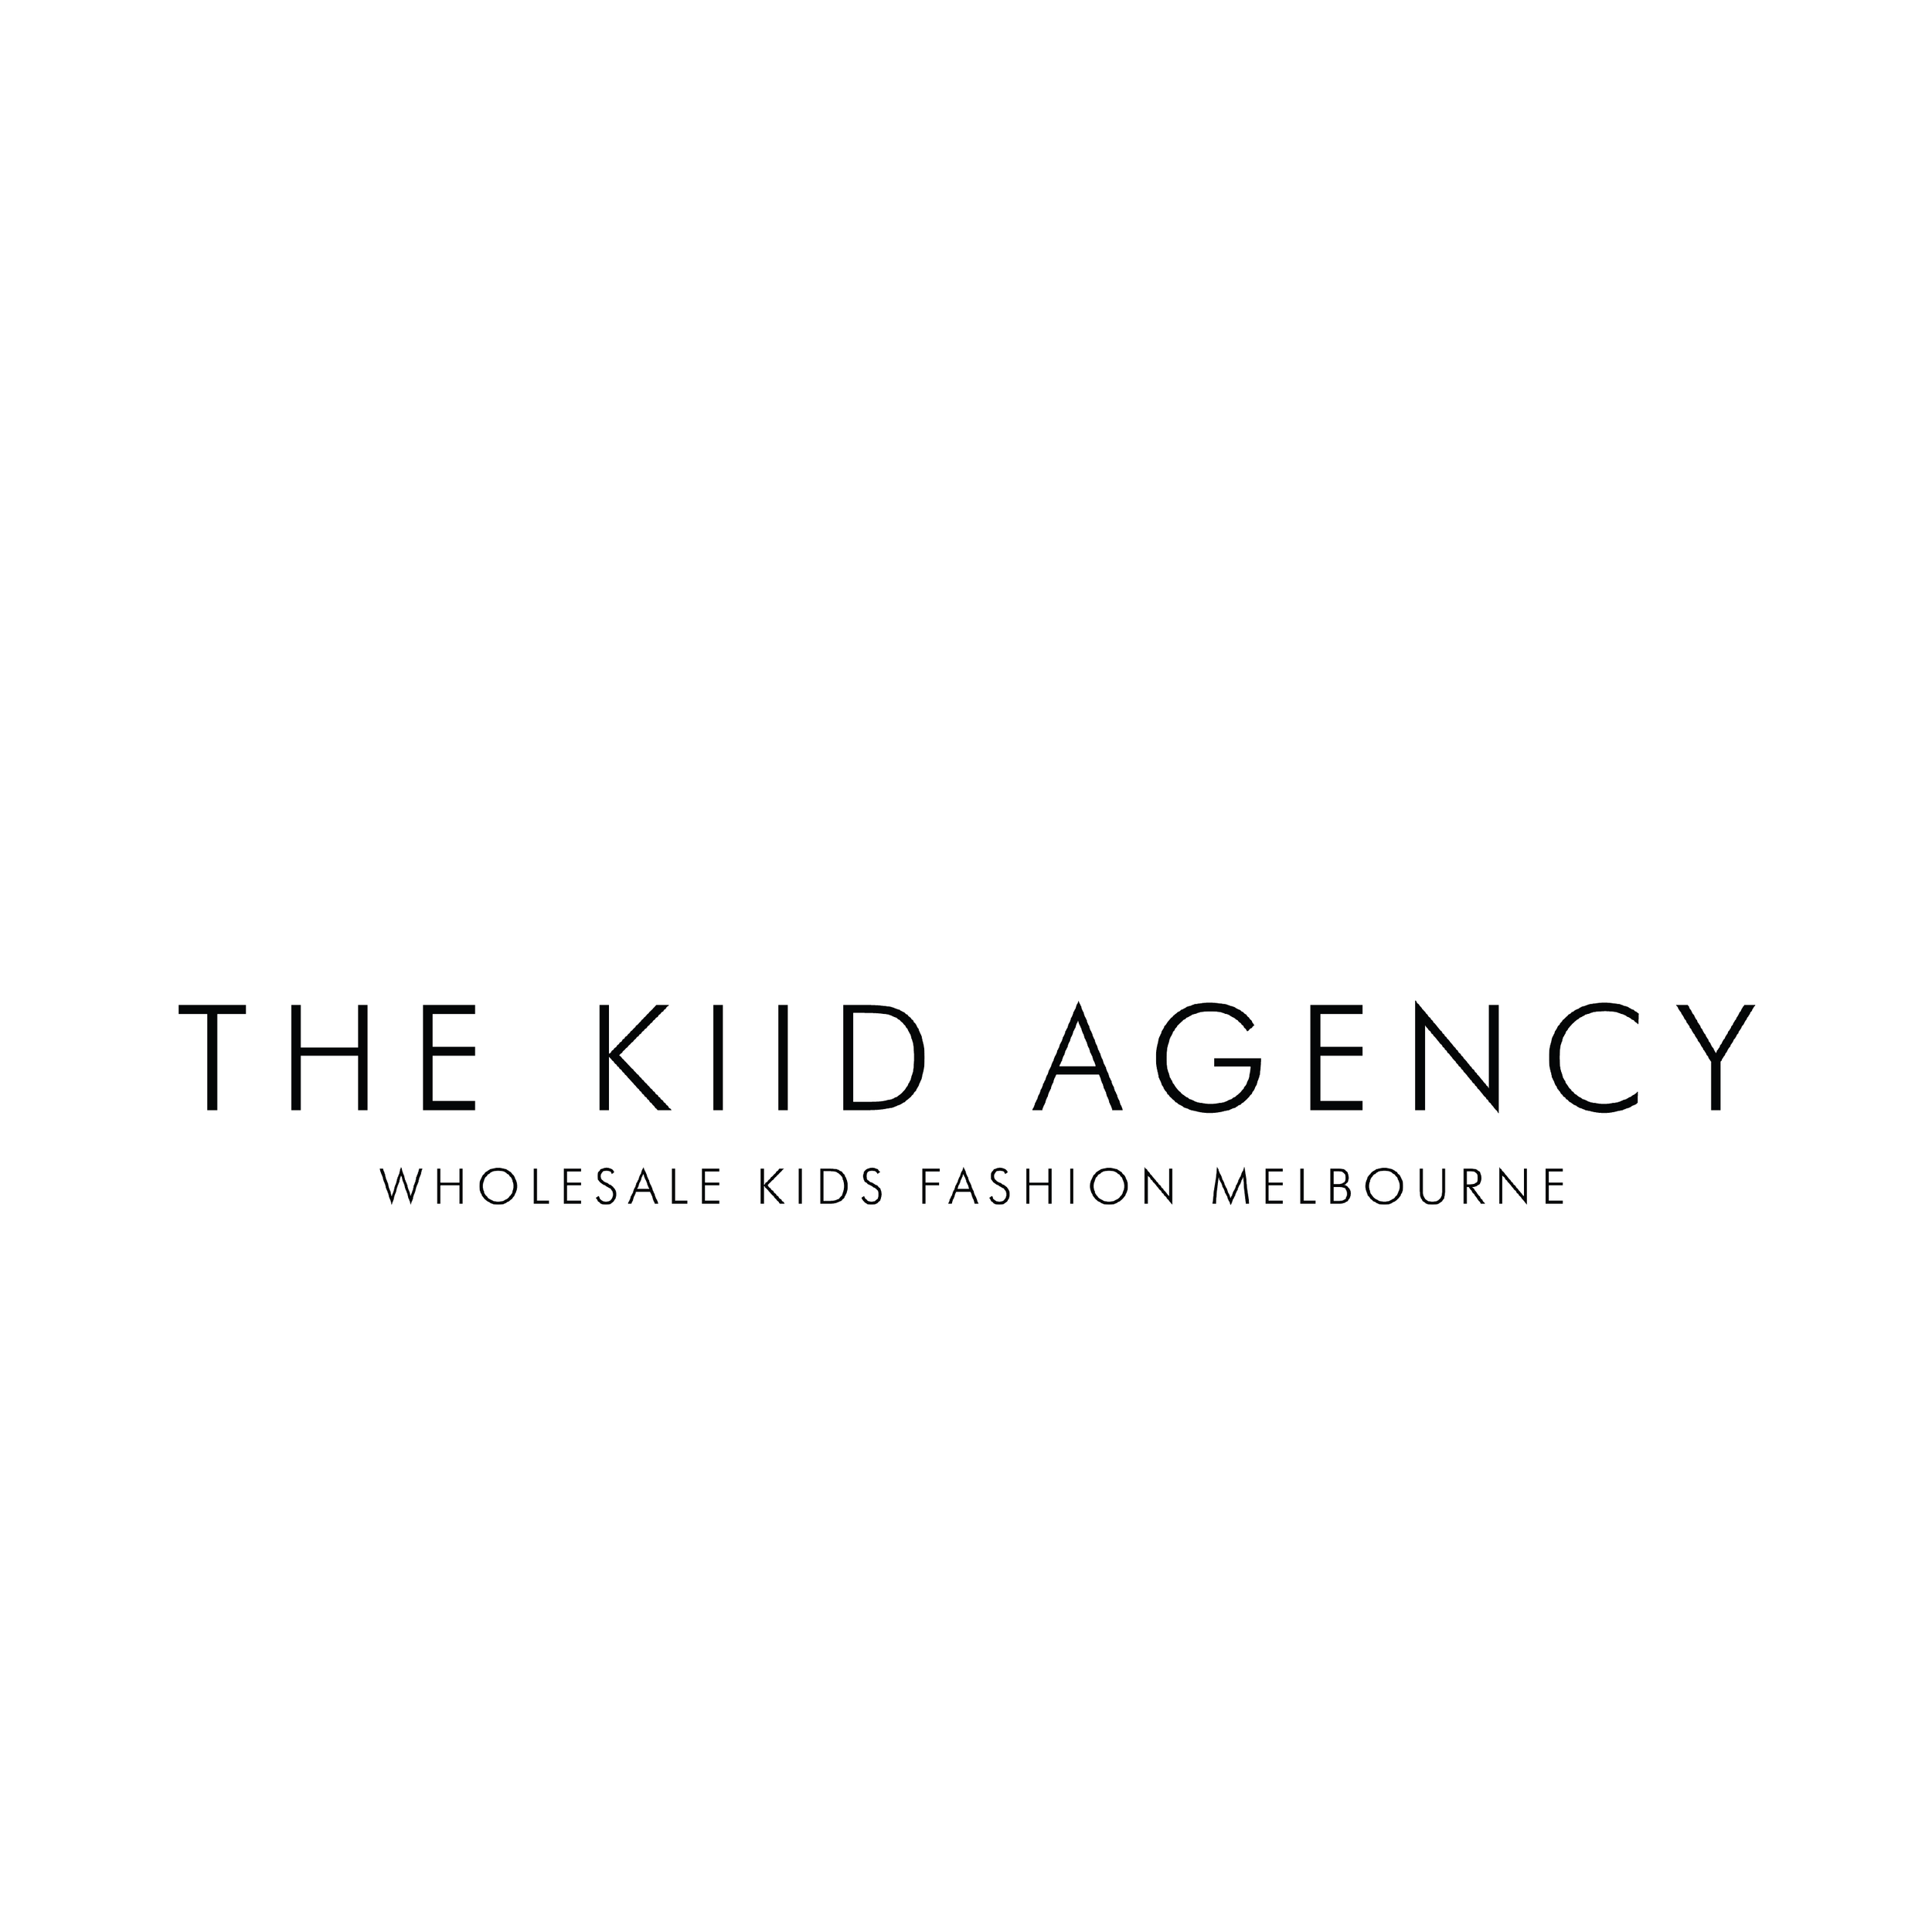 The kiid agency-01-06.png